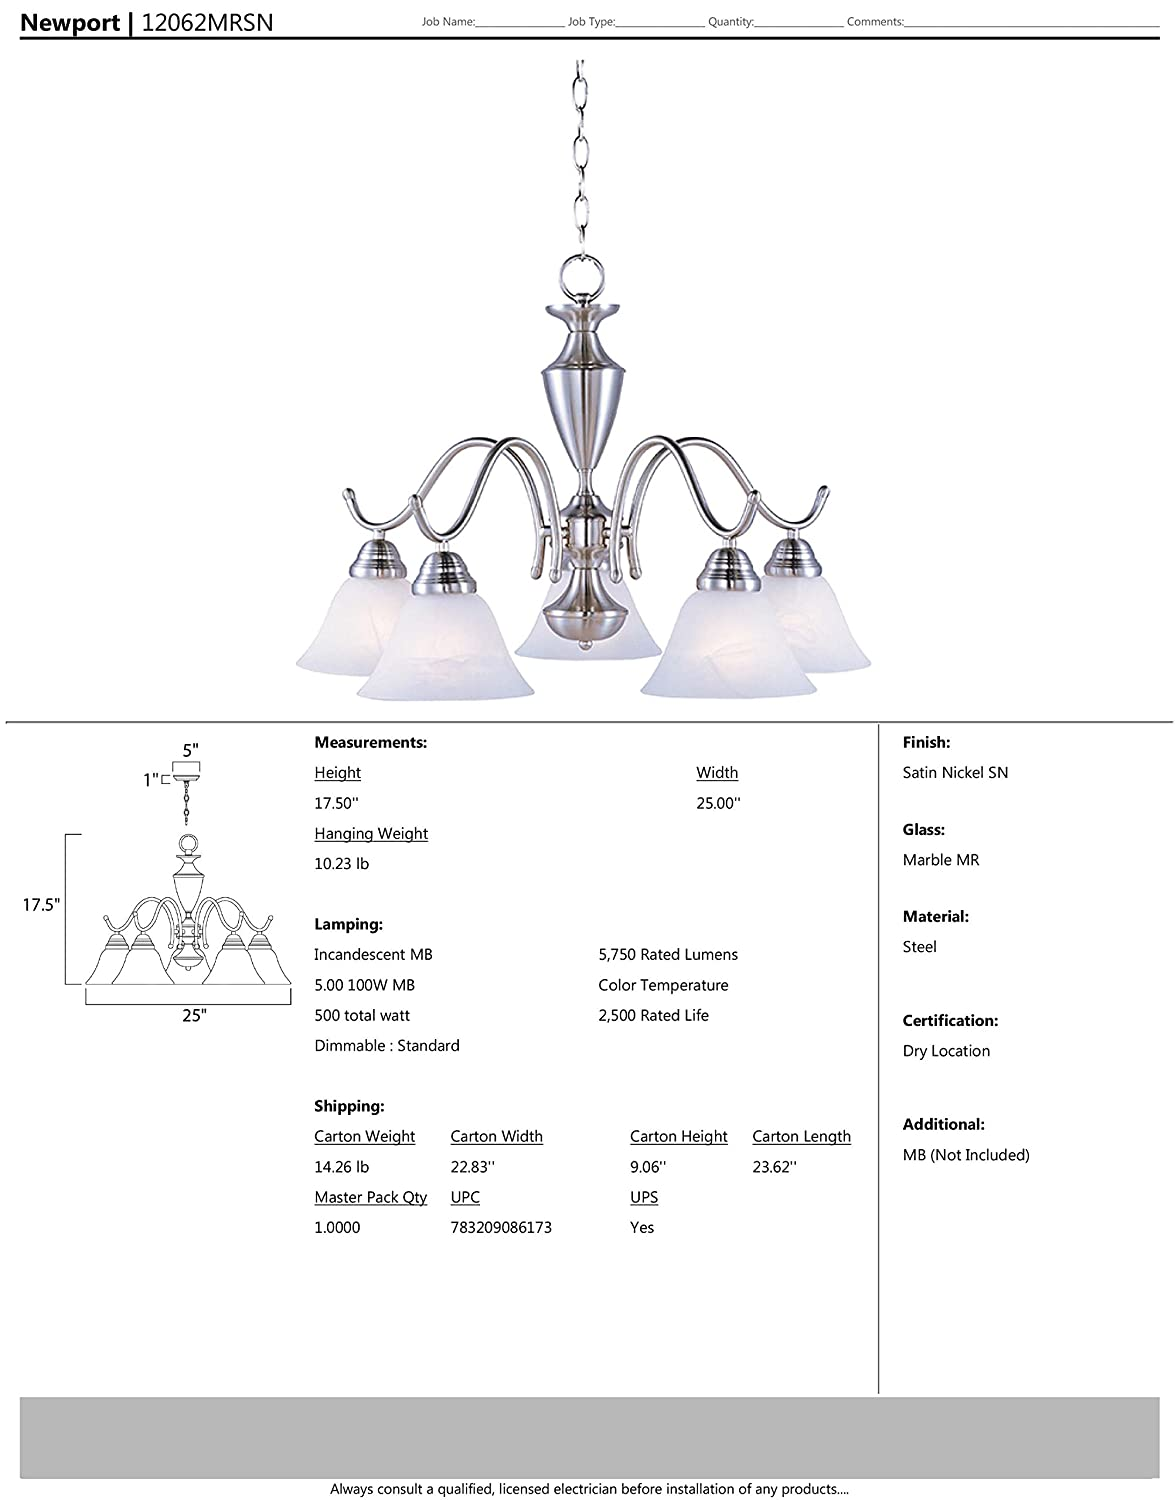 Opal Glass Shade Material MB Incandescent Incandescent Bulb Rated Lumens Maxim Lighting Maxim 12062MRSN Newport 5-Light Chandelier Satin Nickel Finish Standard Dimmable Damp Safety Rating 60W Max. Marble Glass